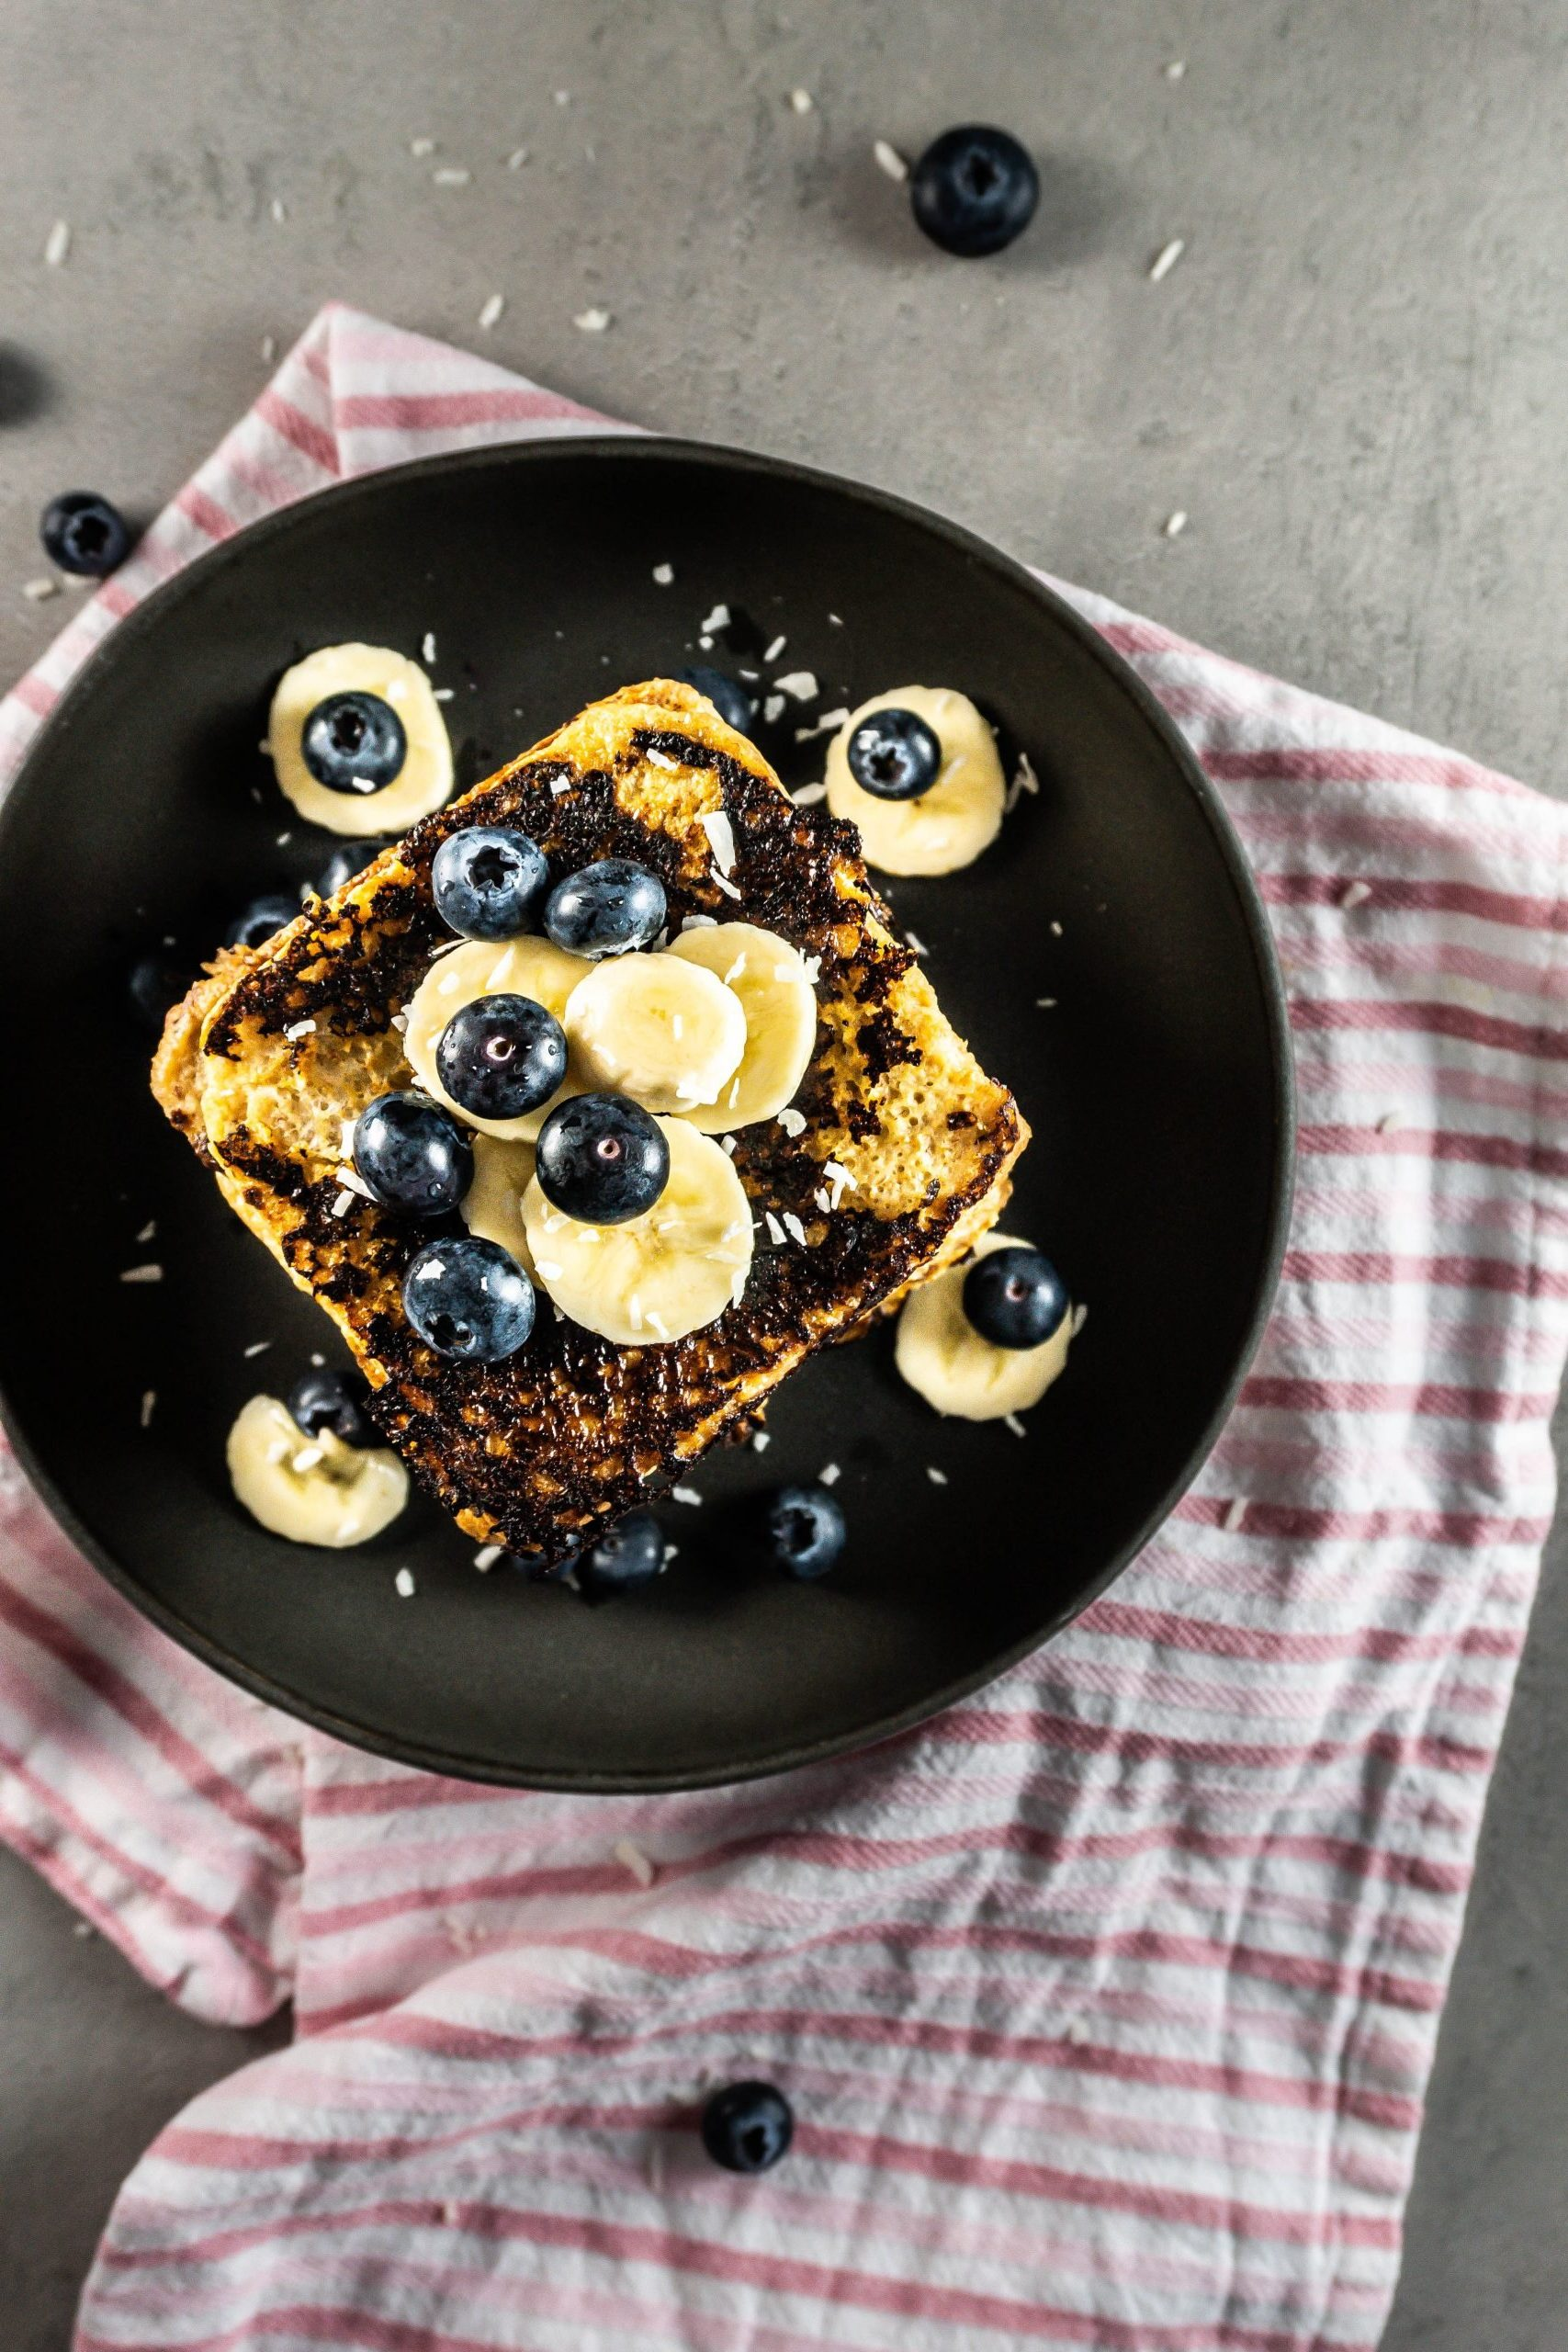 Cinnamon Banana French Toast stacked on top of each other and topped with blueberries, shredded coconut, and banana slices photographed from the top